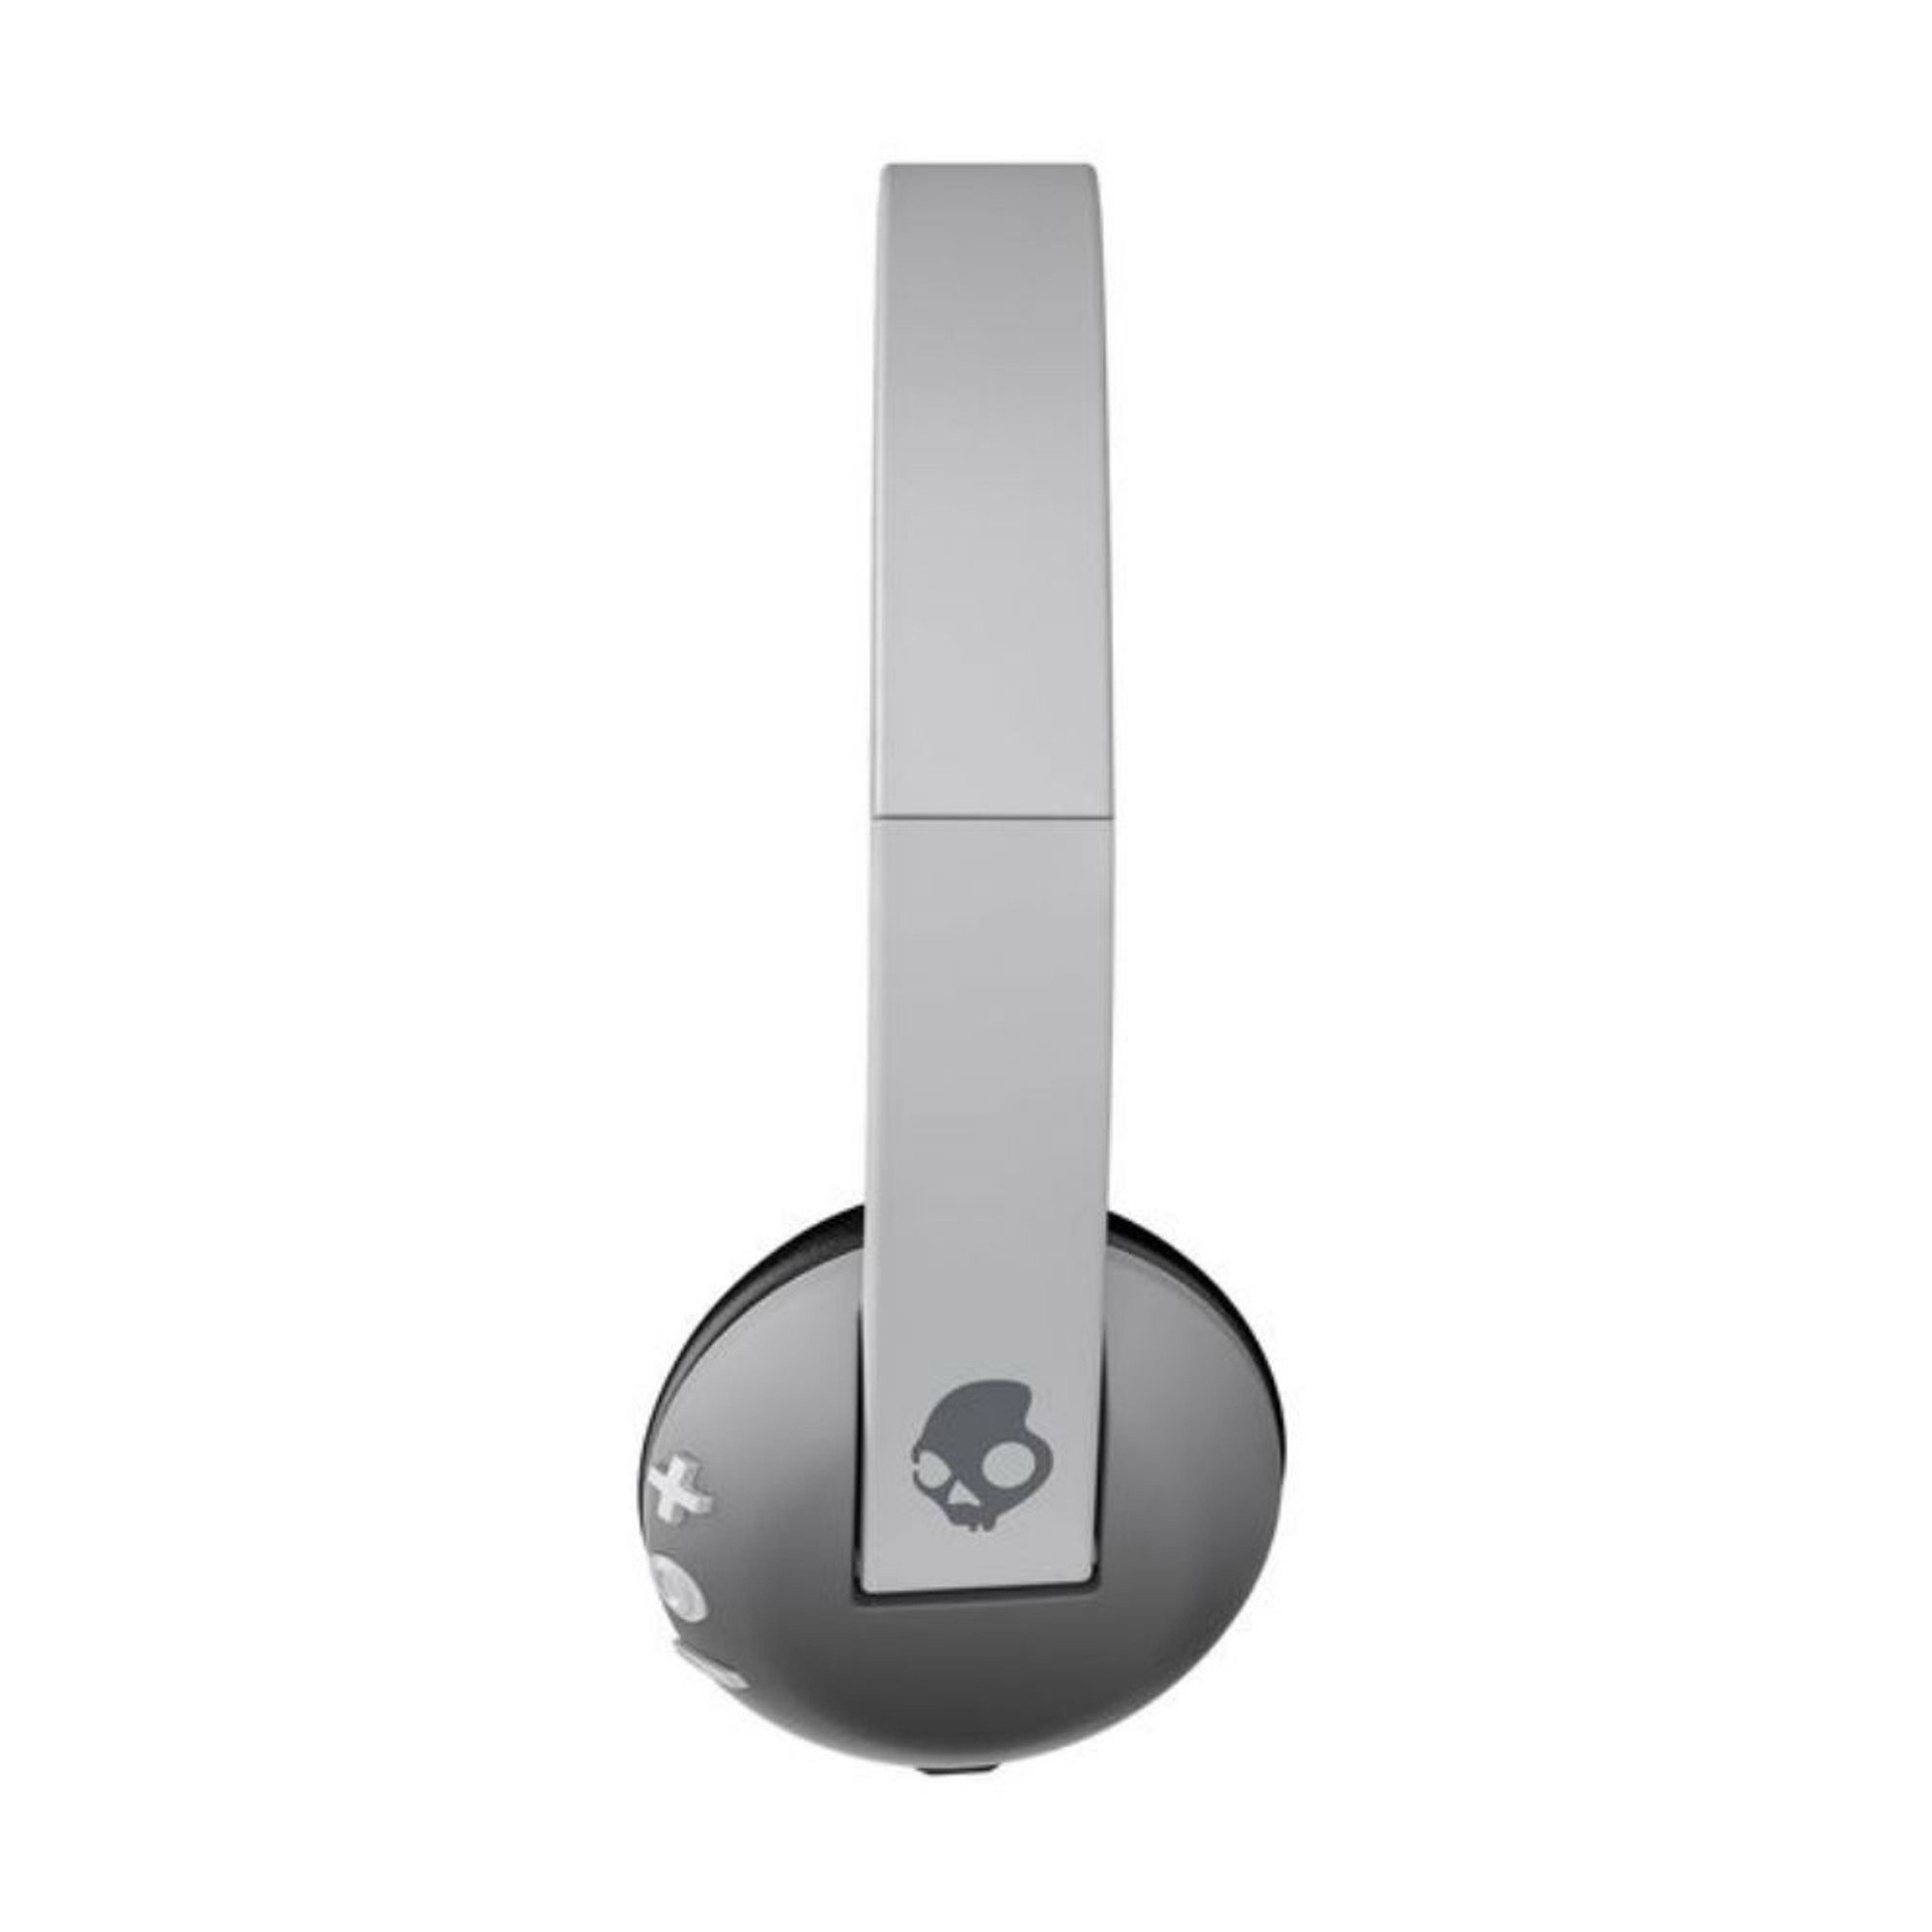 55d484c0e35 Skullcandy Uproar Wireless Headphones (Street Gray) | Skullcandy ...